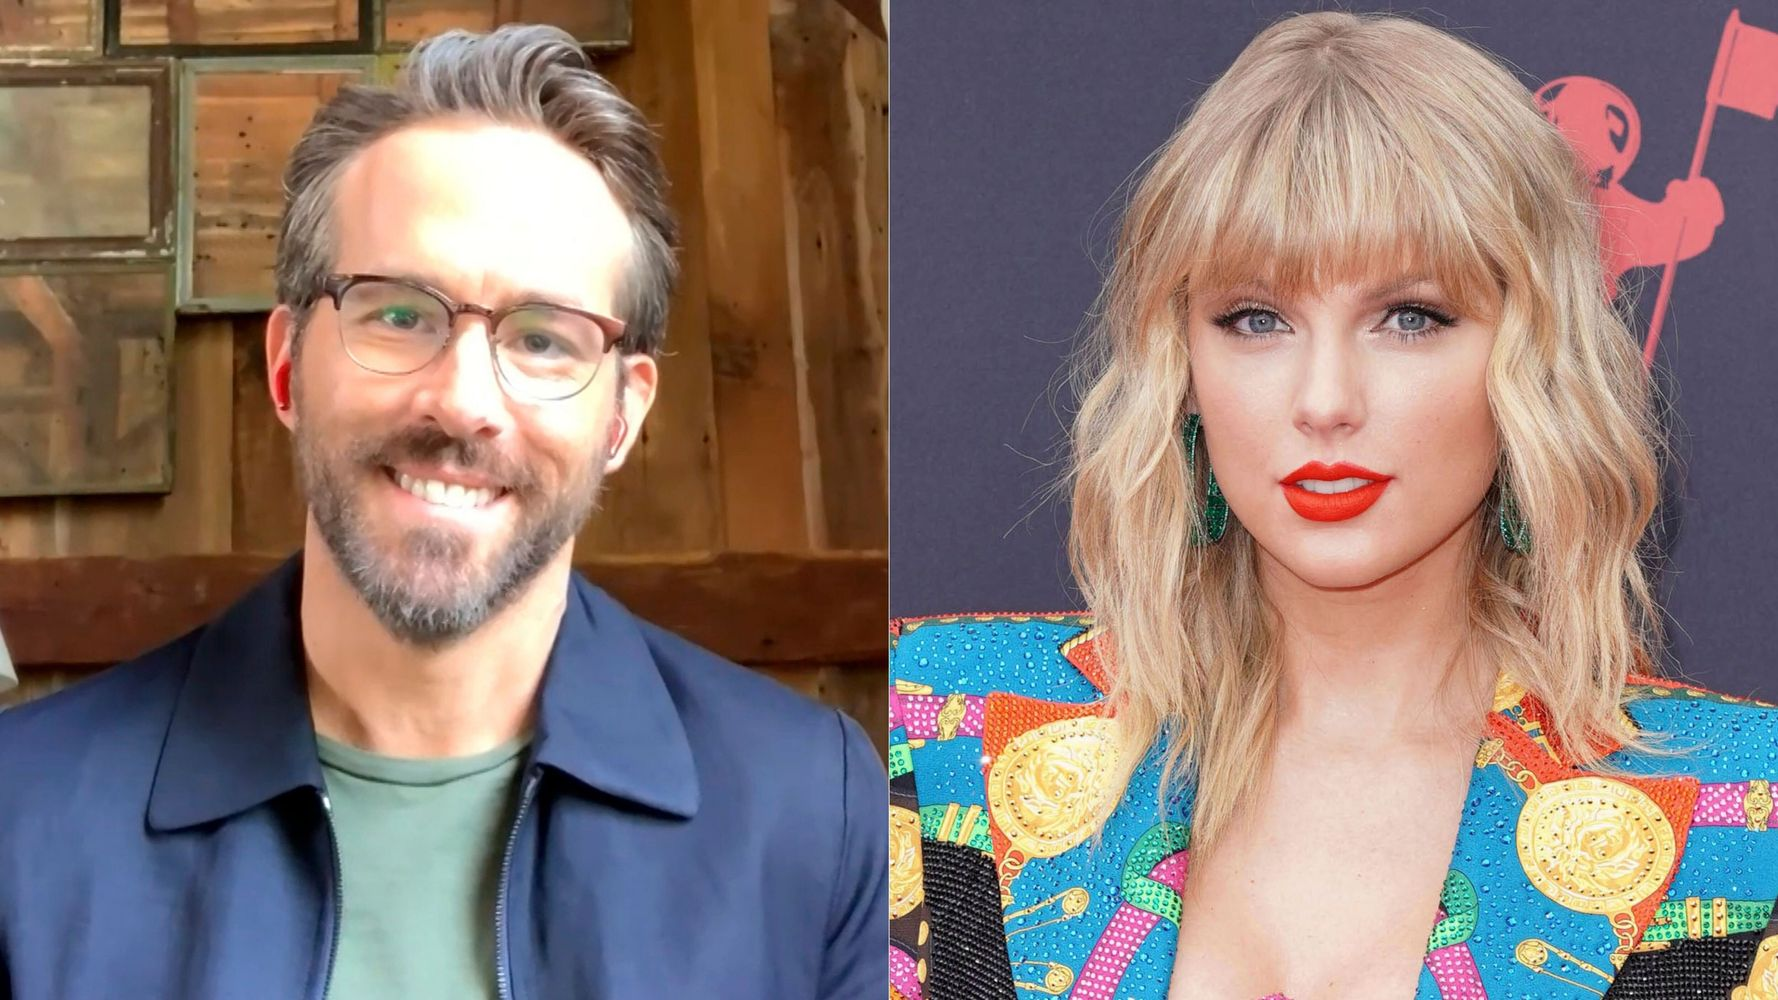 Taylor Swift Let Ryan Reynolds Use Her New Re-Recordings In A Commercial